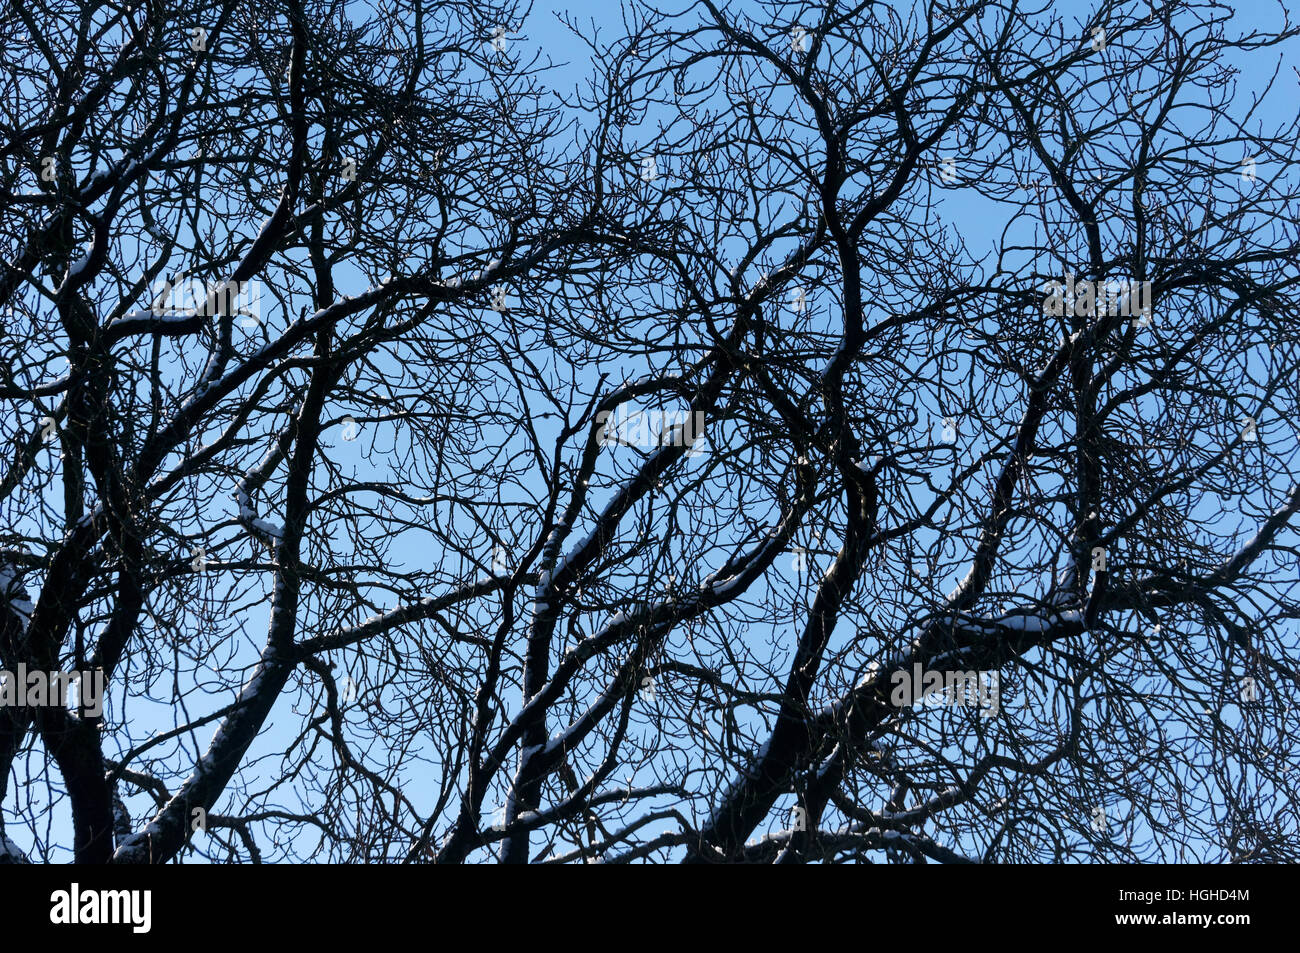 Bare tangled branches of a deciduous tree in winter against a blue sky - Stock Image